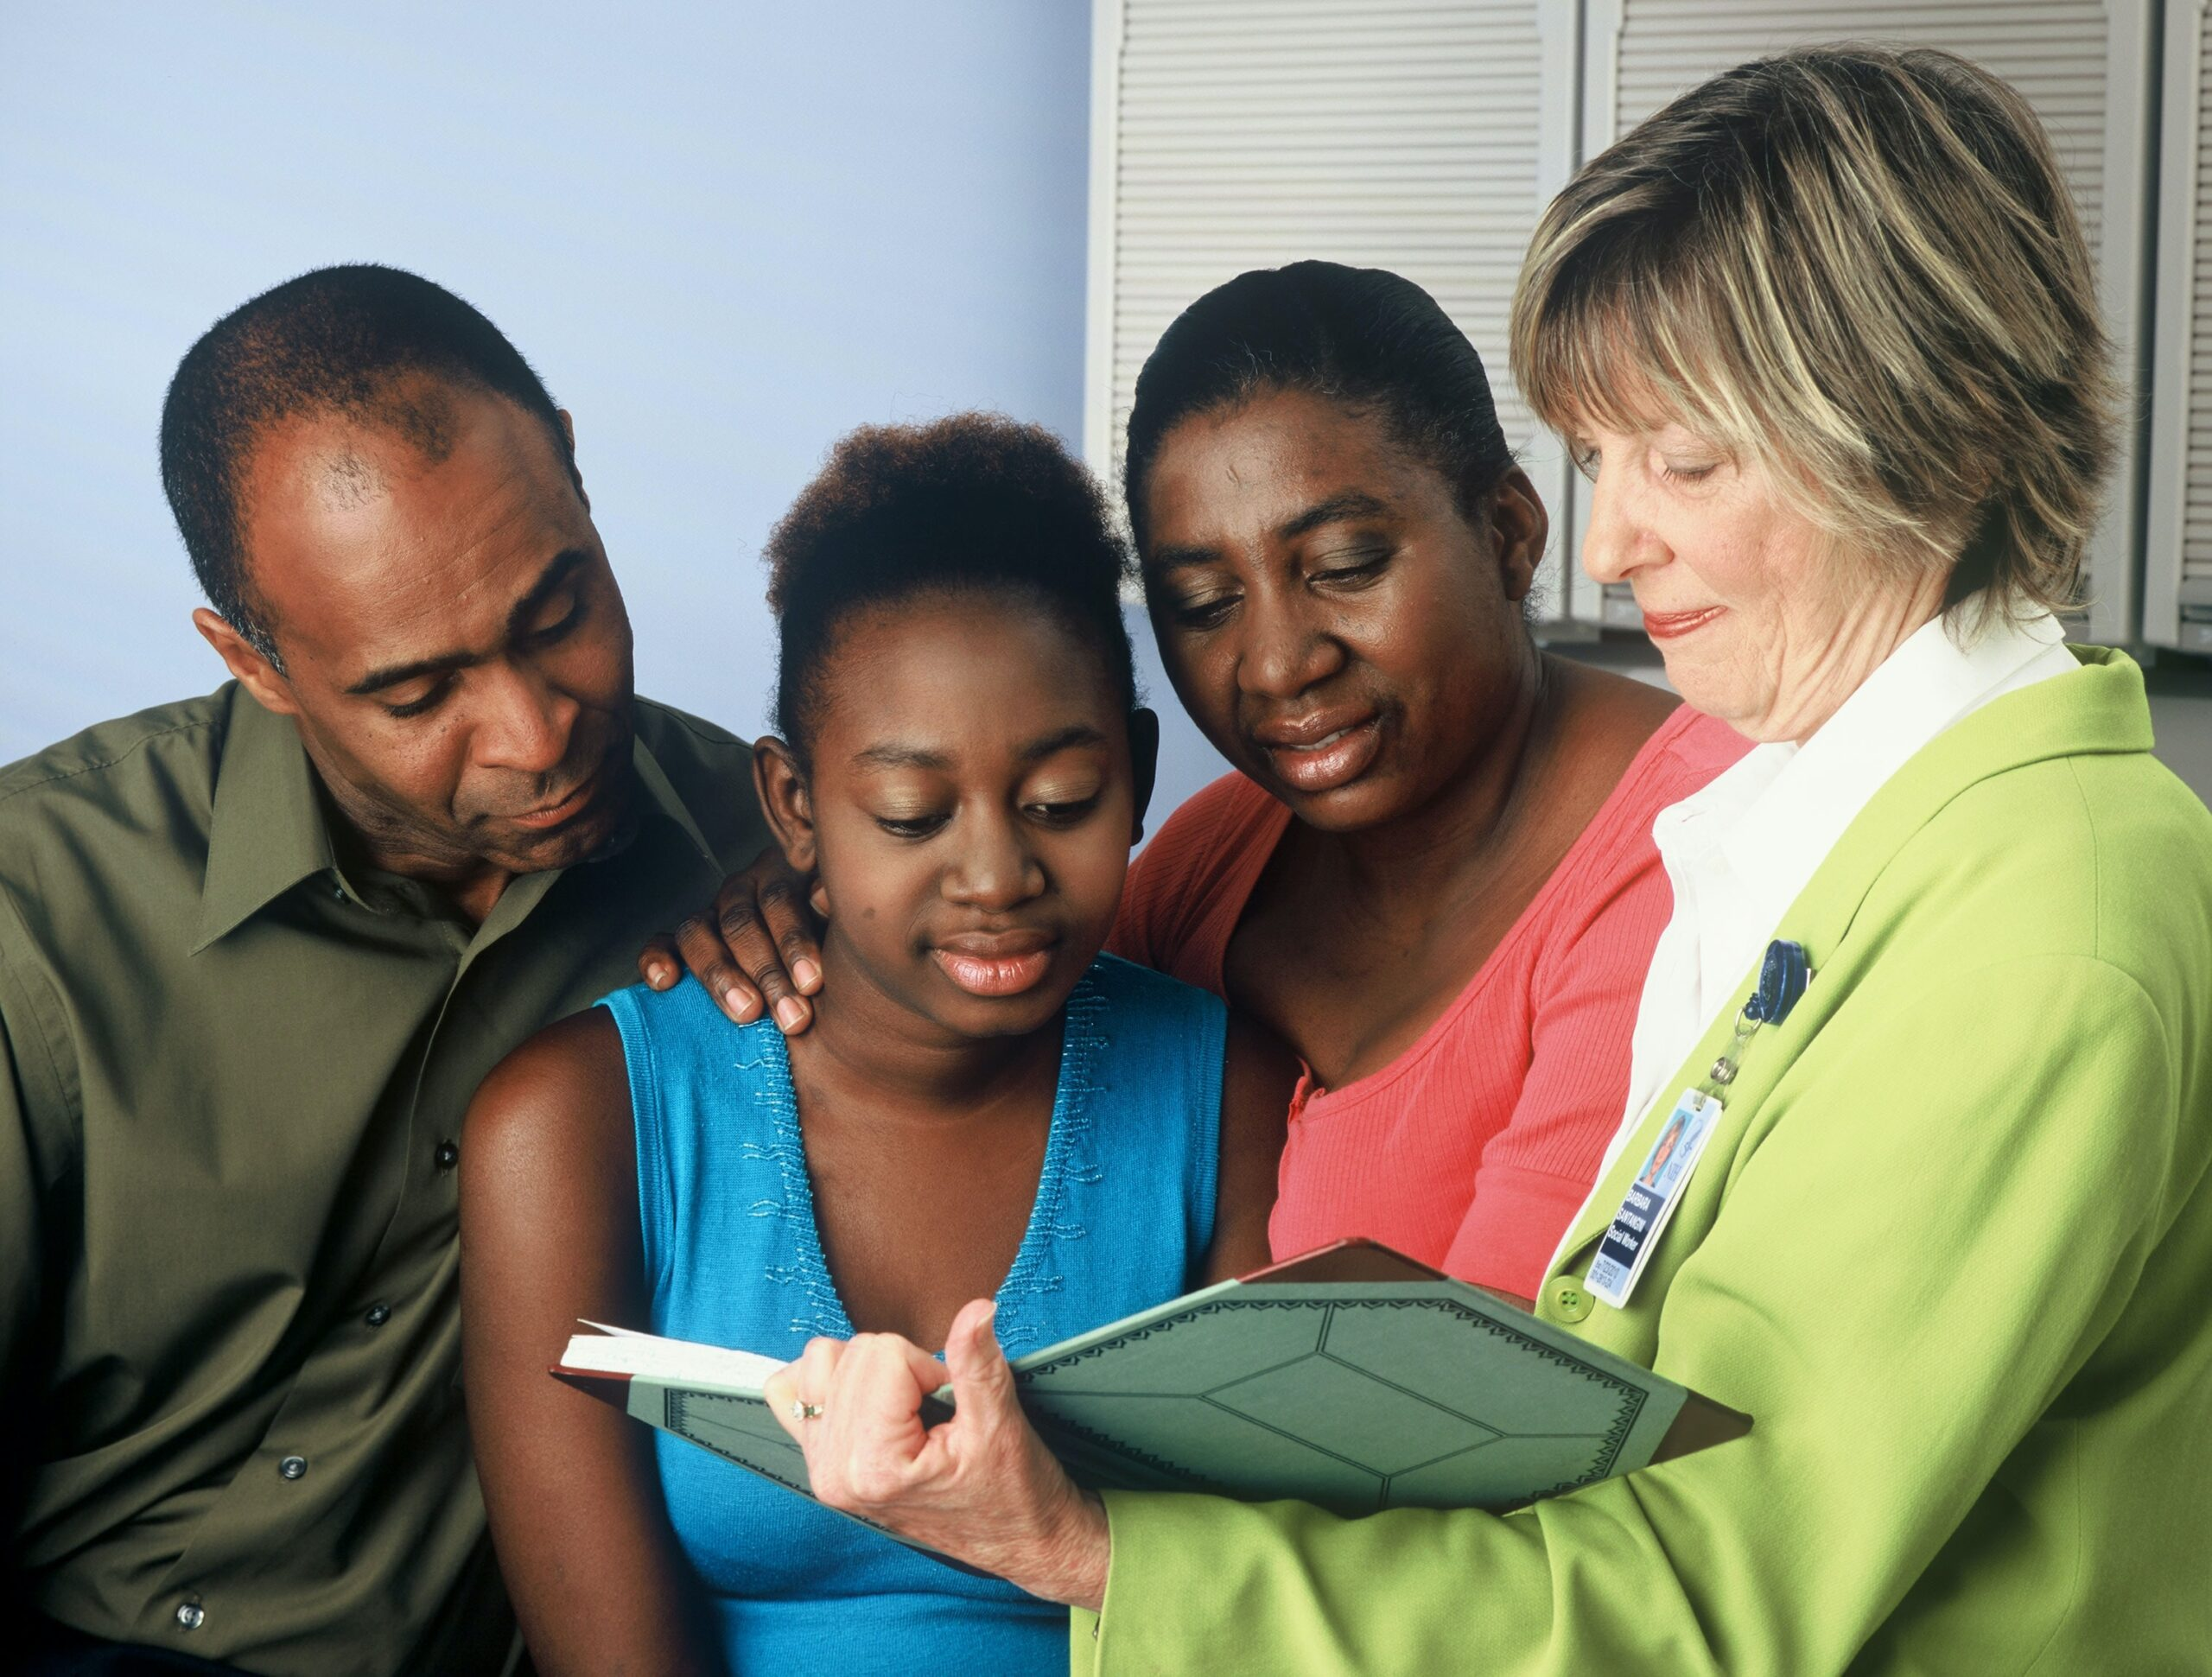 Family reviewing test results together with physician Photo by National Cancer Institute on Unspl